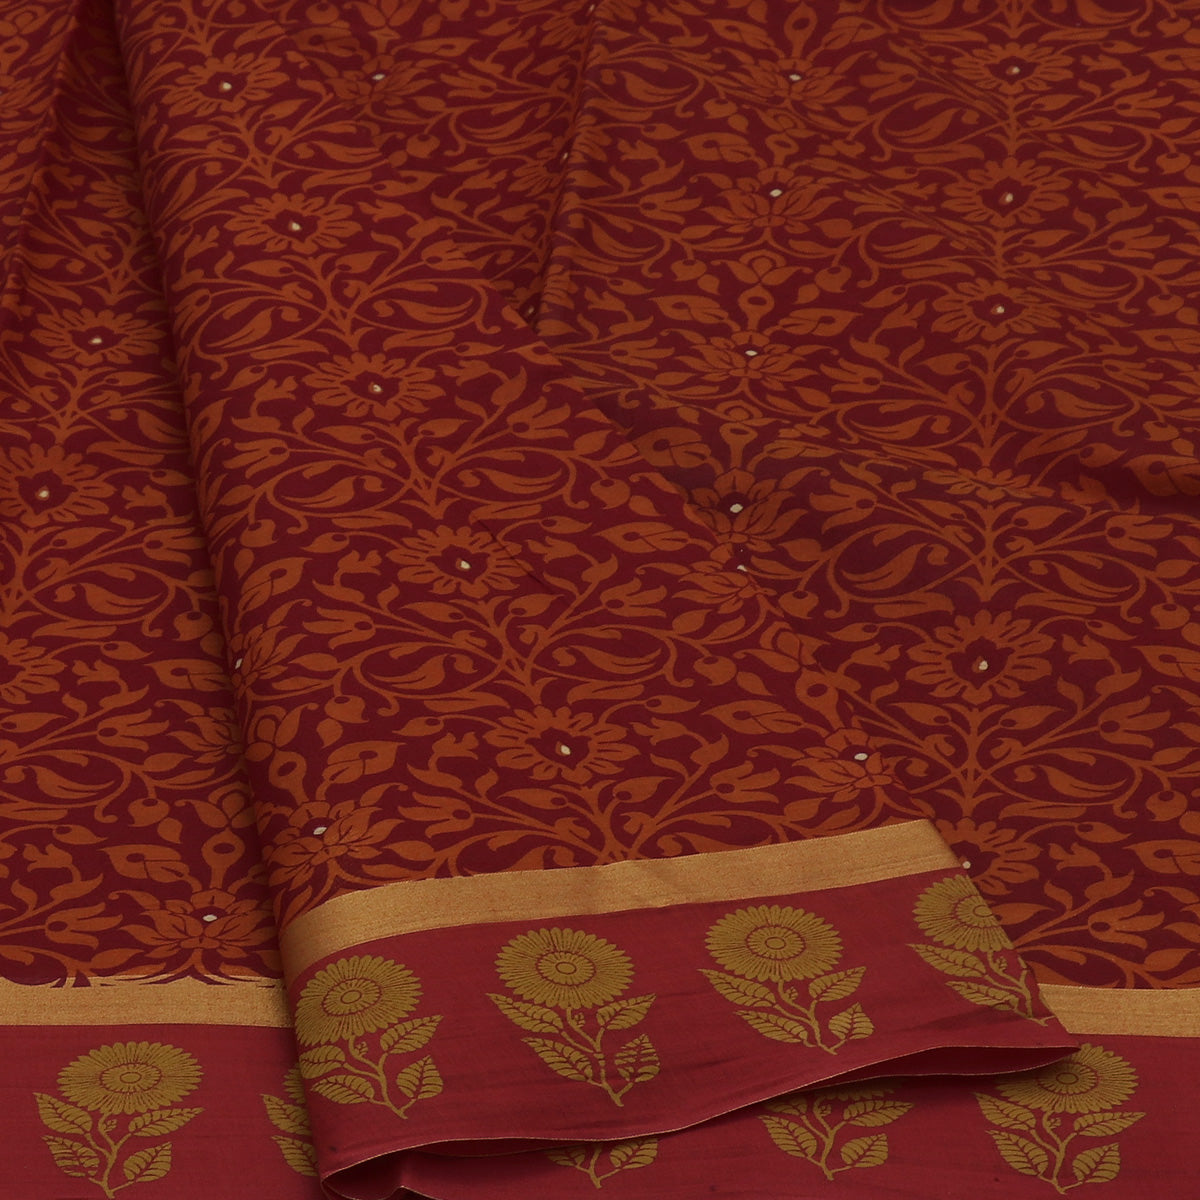 Chanderi Cotton Saree Maroon with simple zari border and Flower border